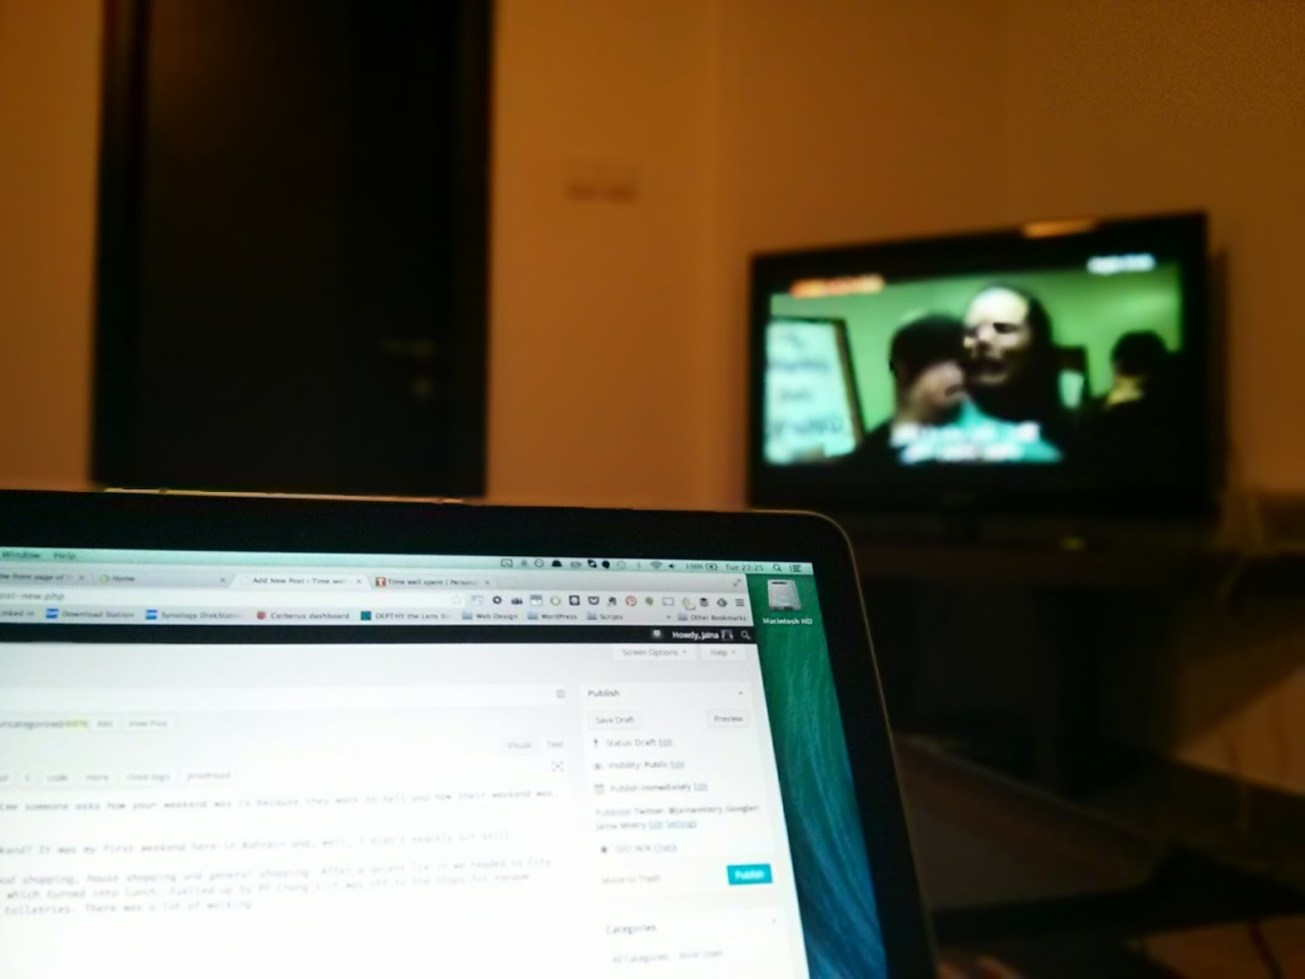 Blog resolutions: More TV/Film stuff